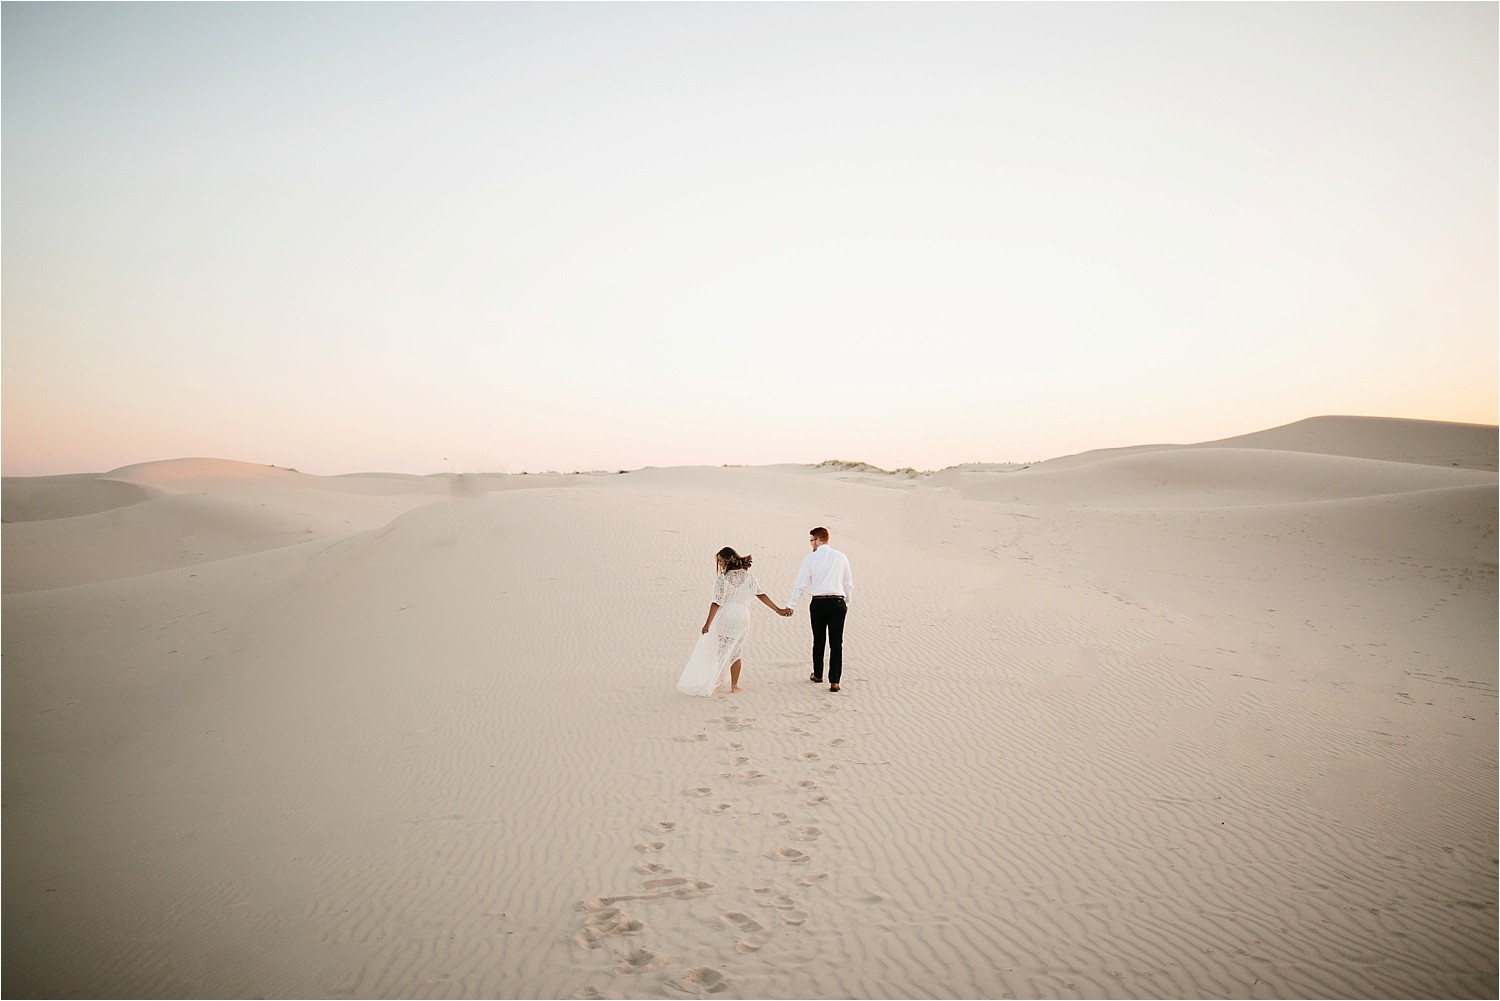 Lauren + Jacob __ a monahans sand dunes engagement session at sunrise by North Texas Wedding Photographer, Rachel Meagan Photography __ 07